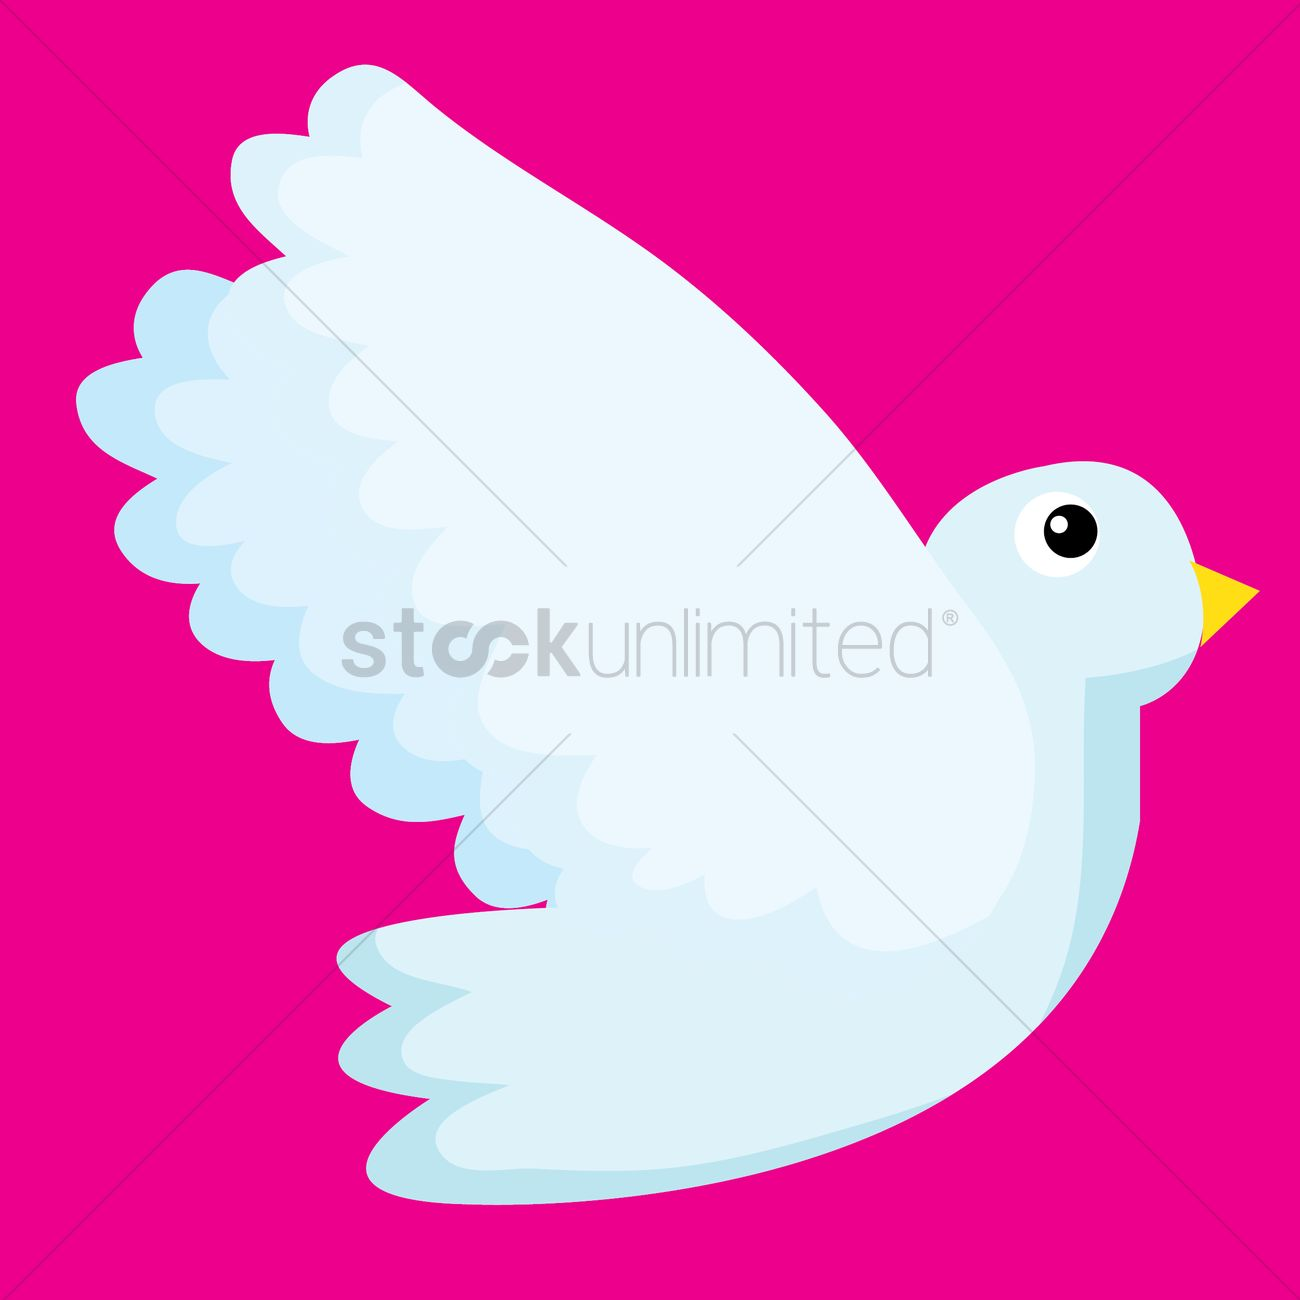 Dove Vector Image - 1418698 | StockUnlimited